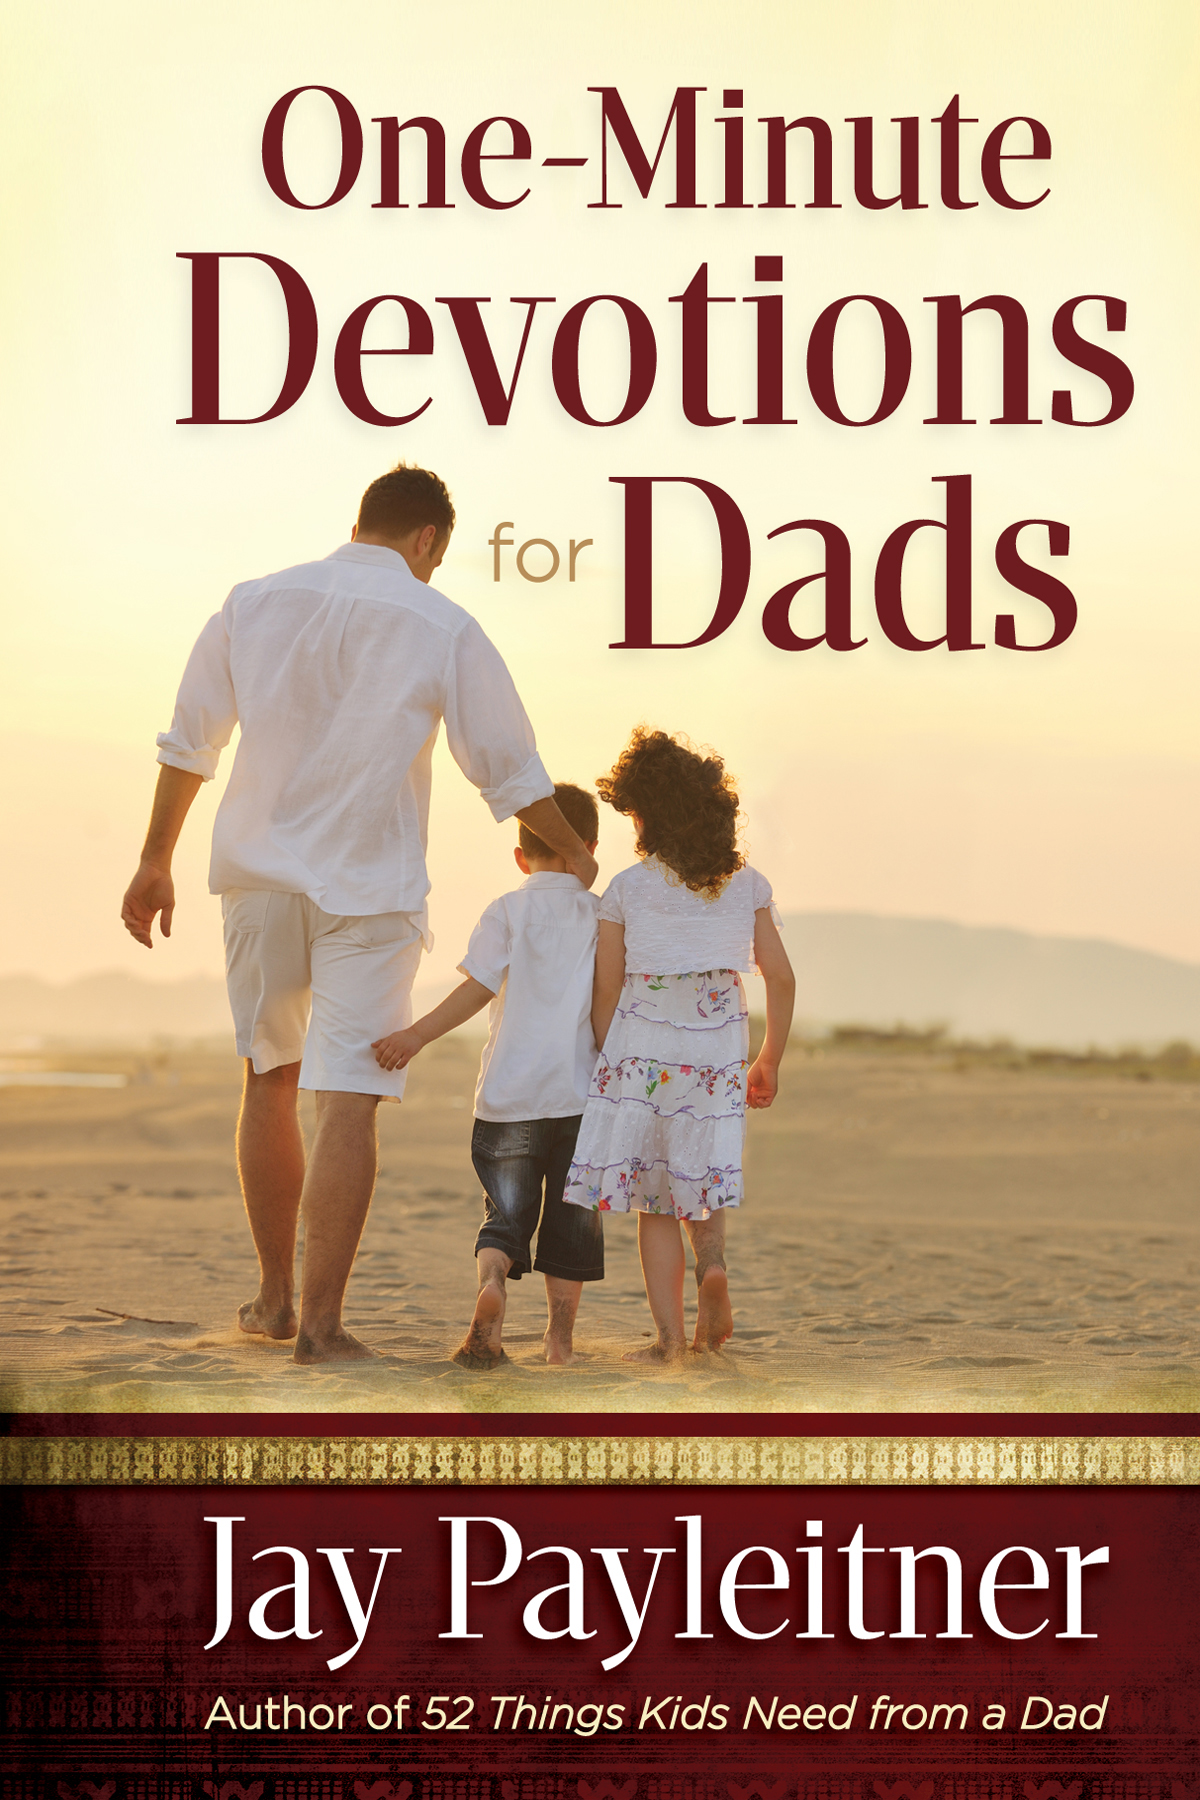 One-Minute Devotions for Dads